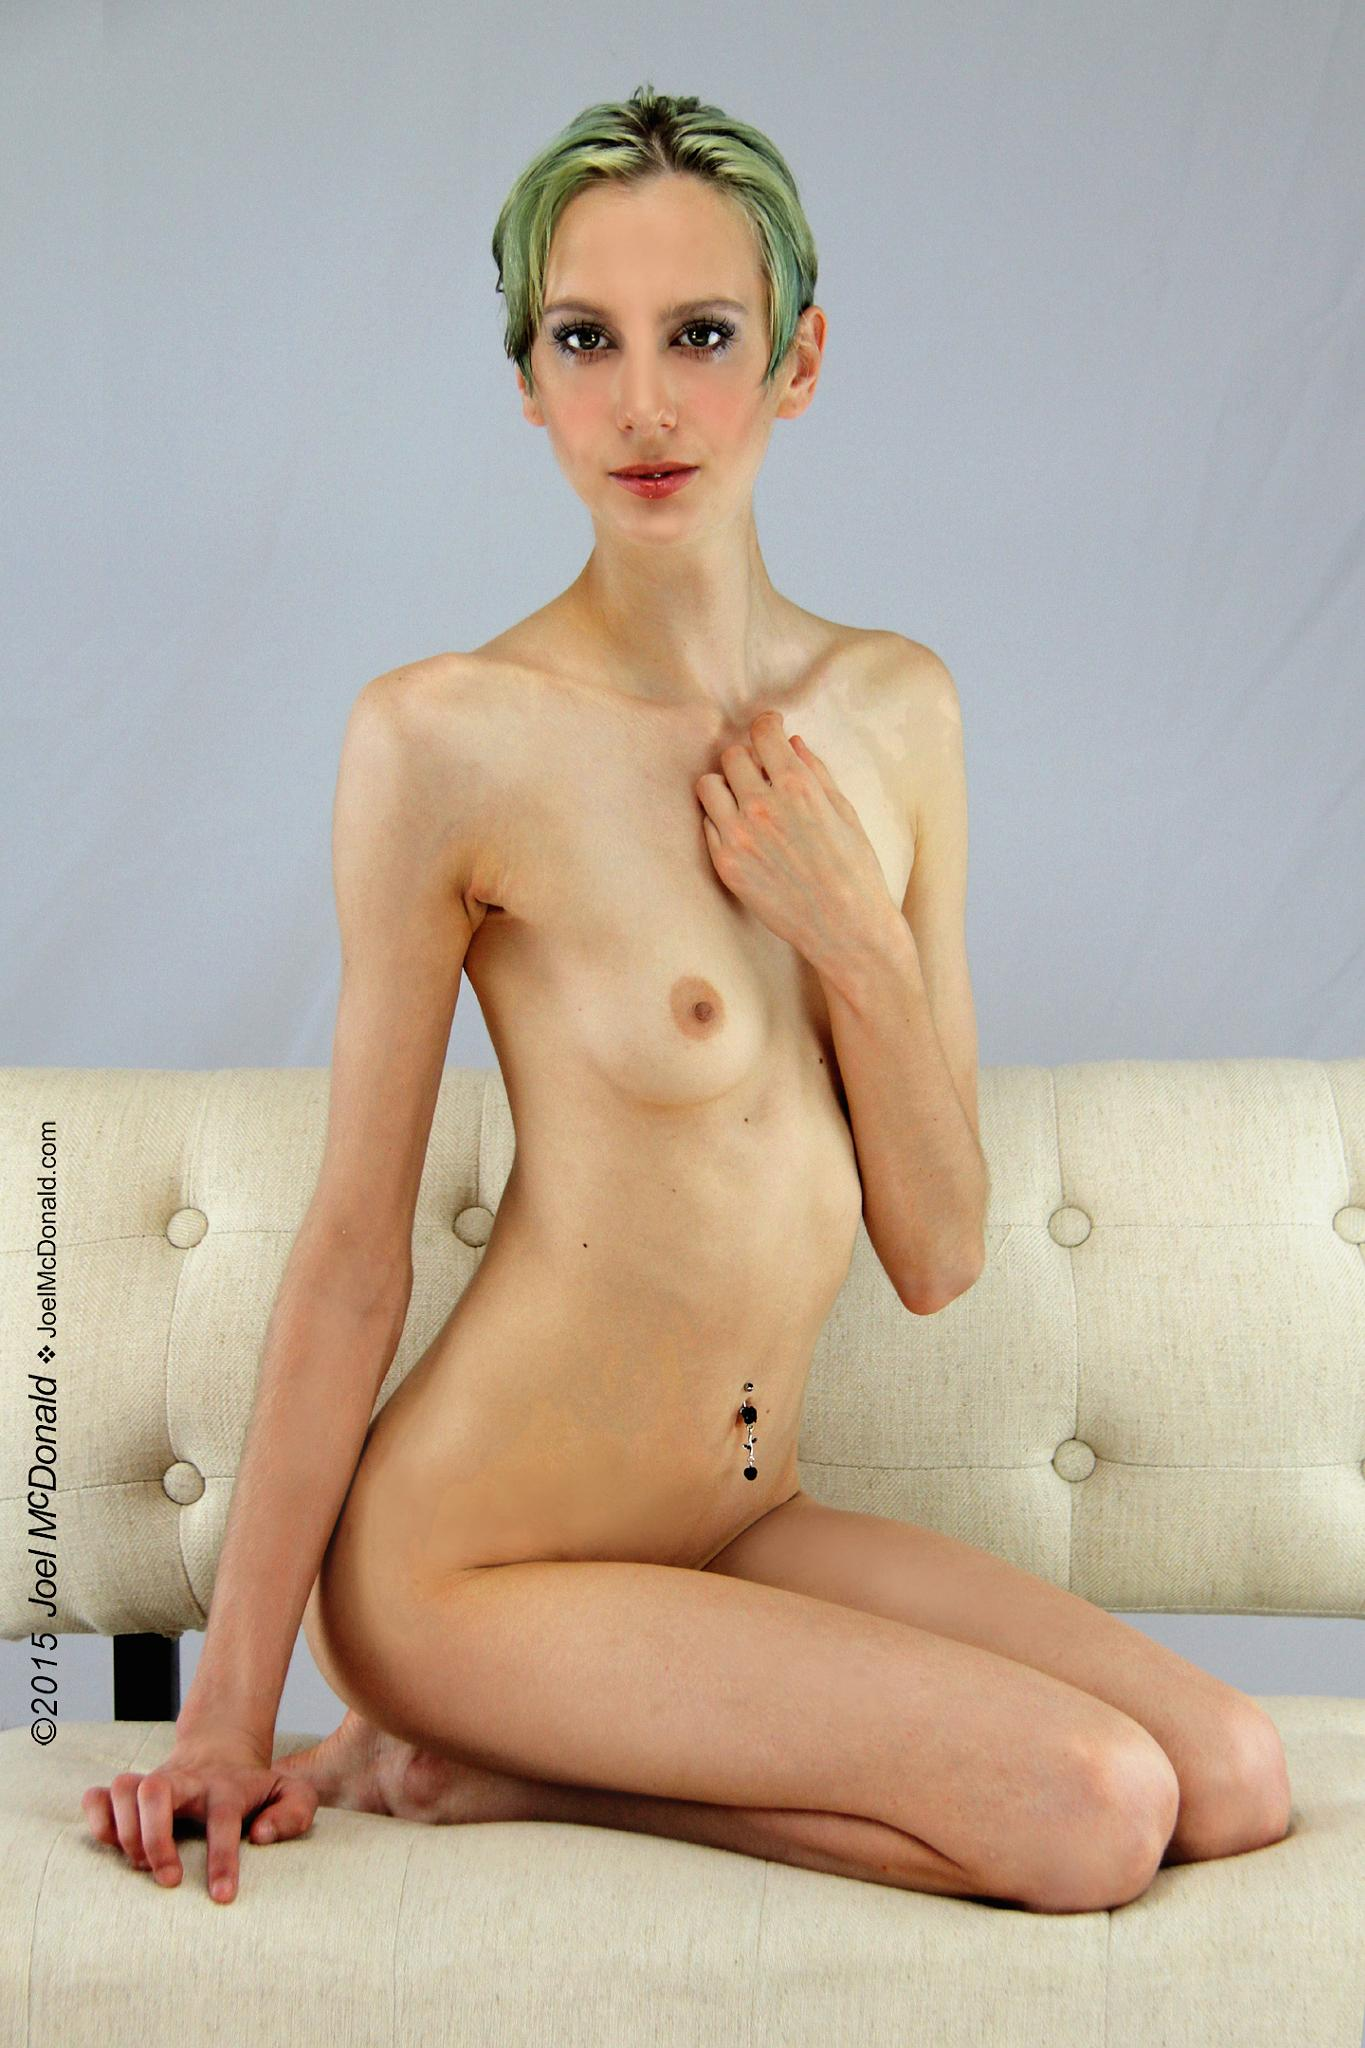 Amy - Glamour Nude #4 by Joel McDonald - The Wandering Tog